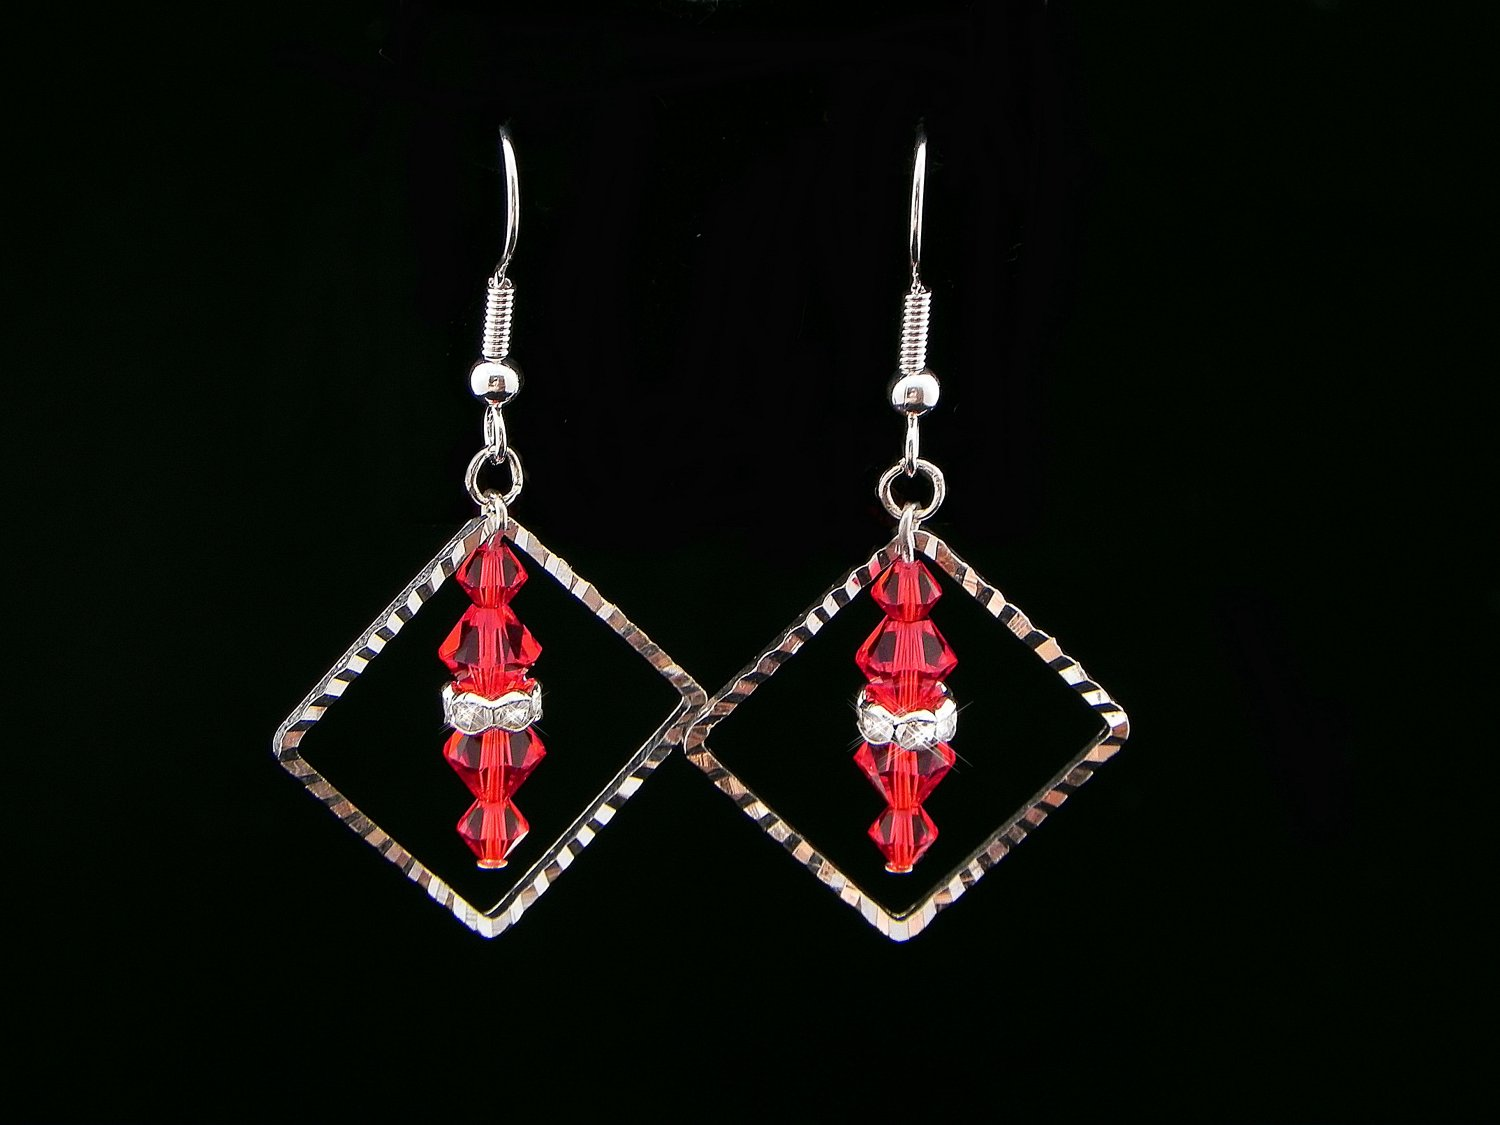 Handmade Red Swarovski Crystal Earrings (Item:00338)